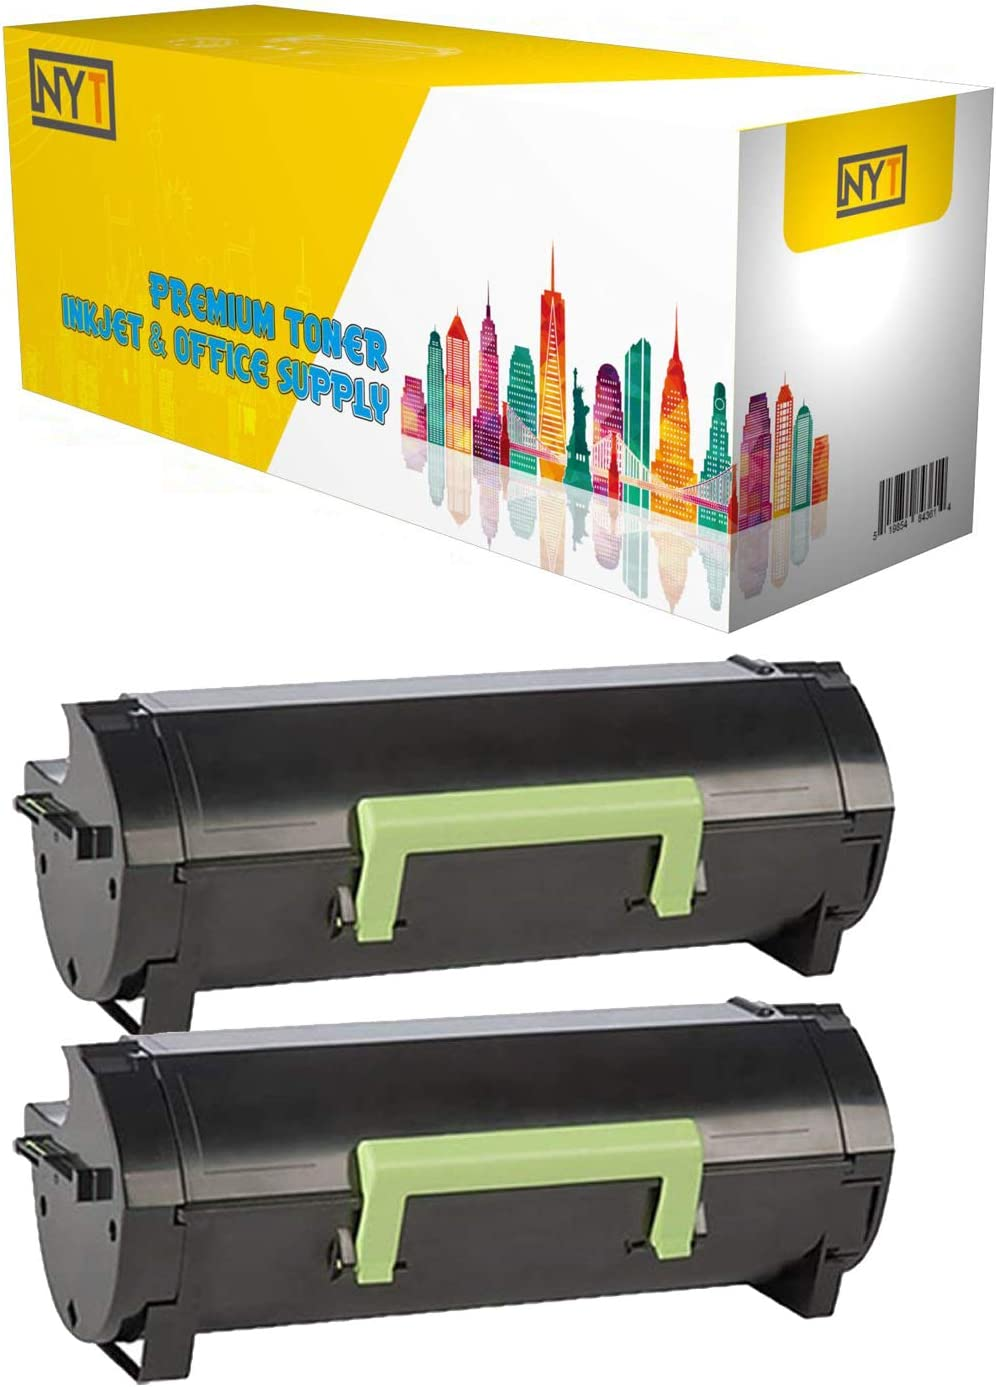 2 Pack NYT/Compatible/52D1X00 Replacement/for/521X Toner/Cartridge/for/Use/in/ Lexmark MS711DN MS811DN MS811DTN MS811N Black